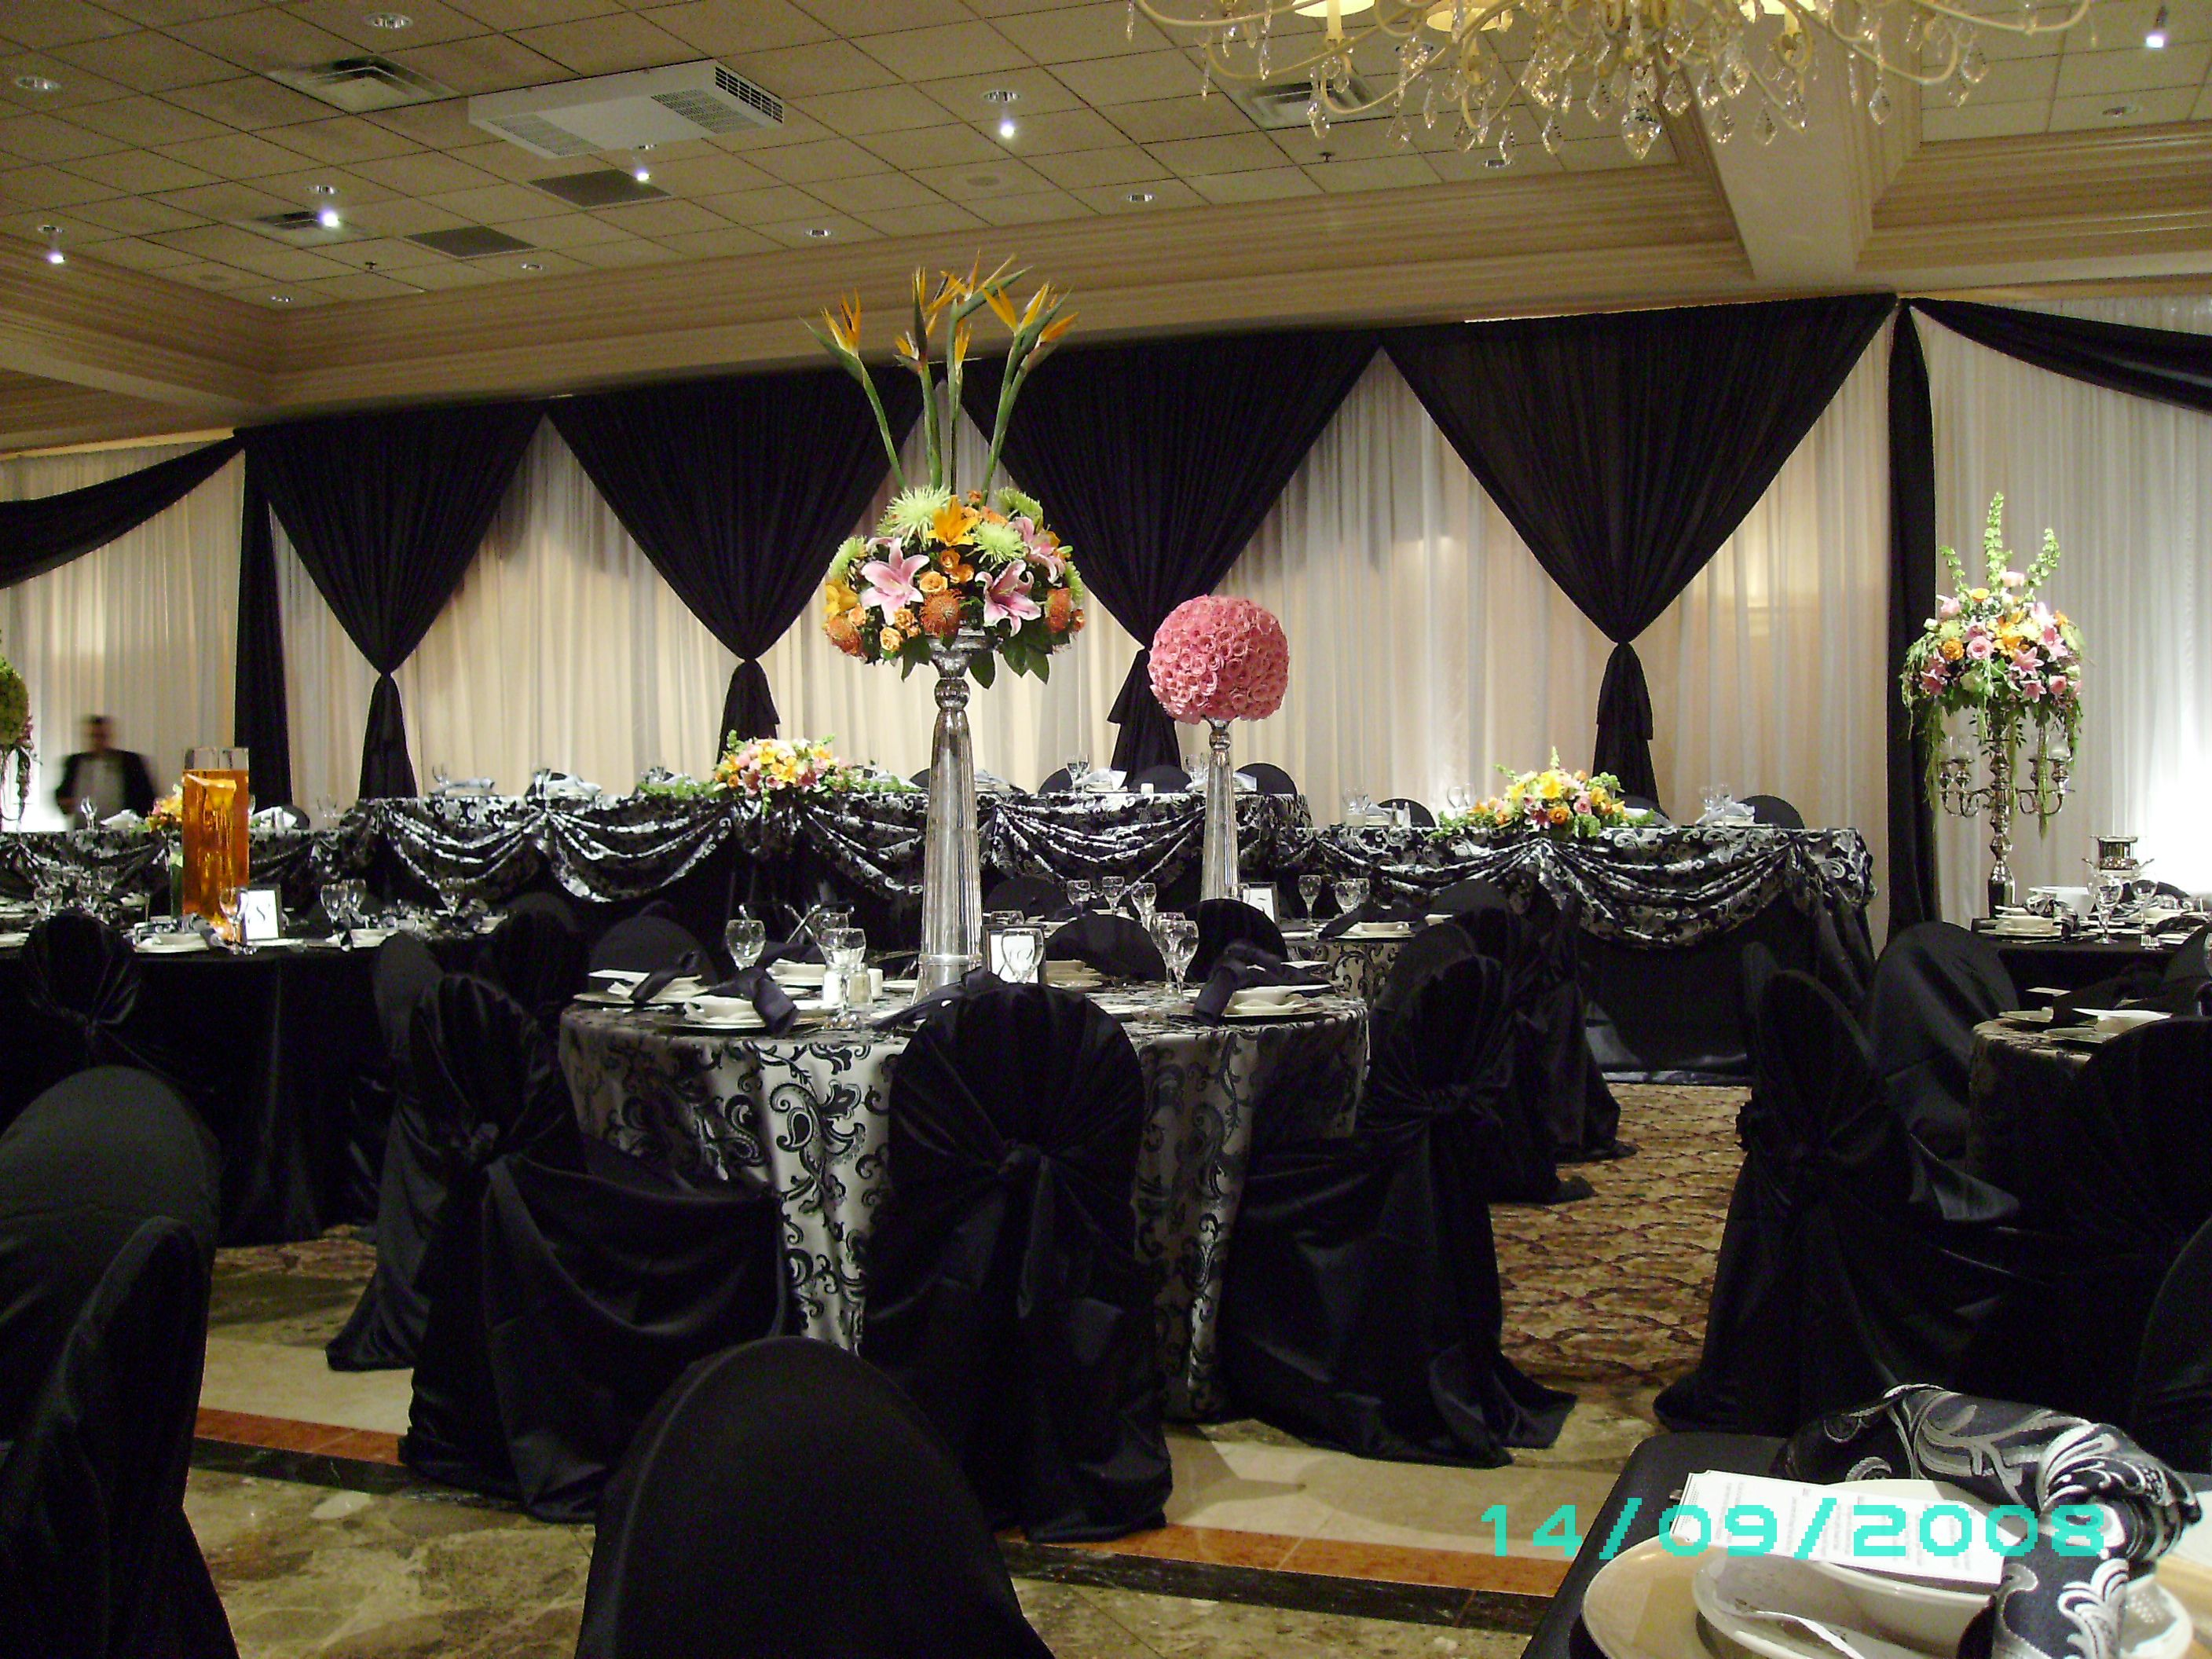 Wedding decorations backdrop  Black u White Backdrop  Fabric draping  Pinterest  Backdrops